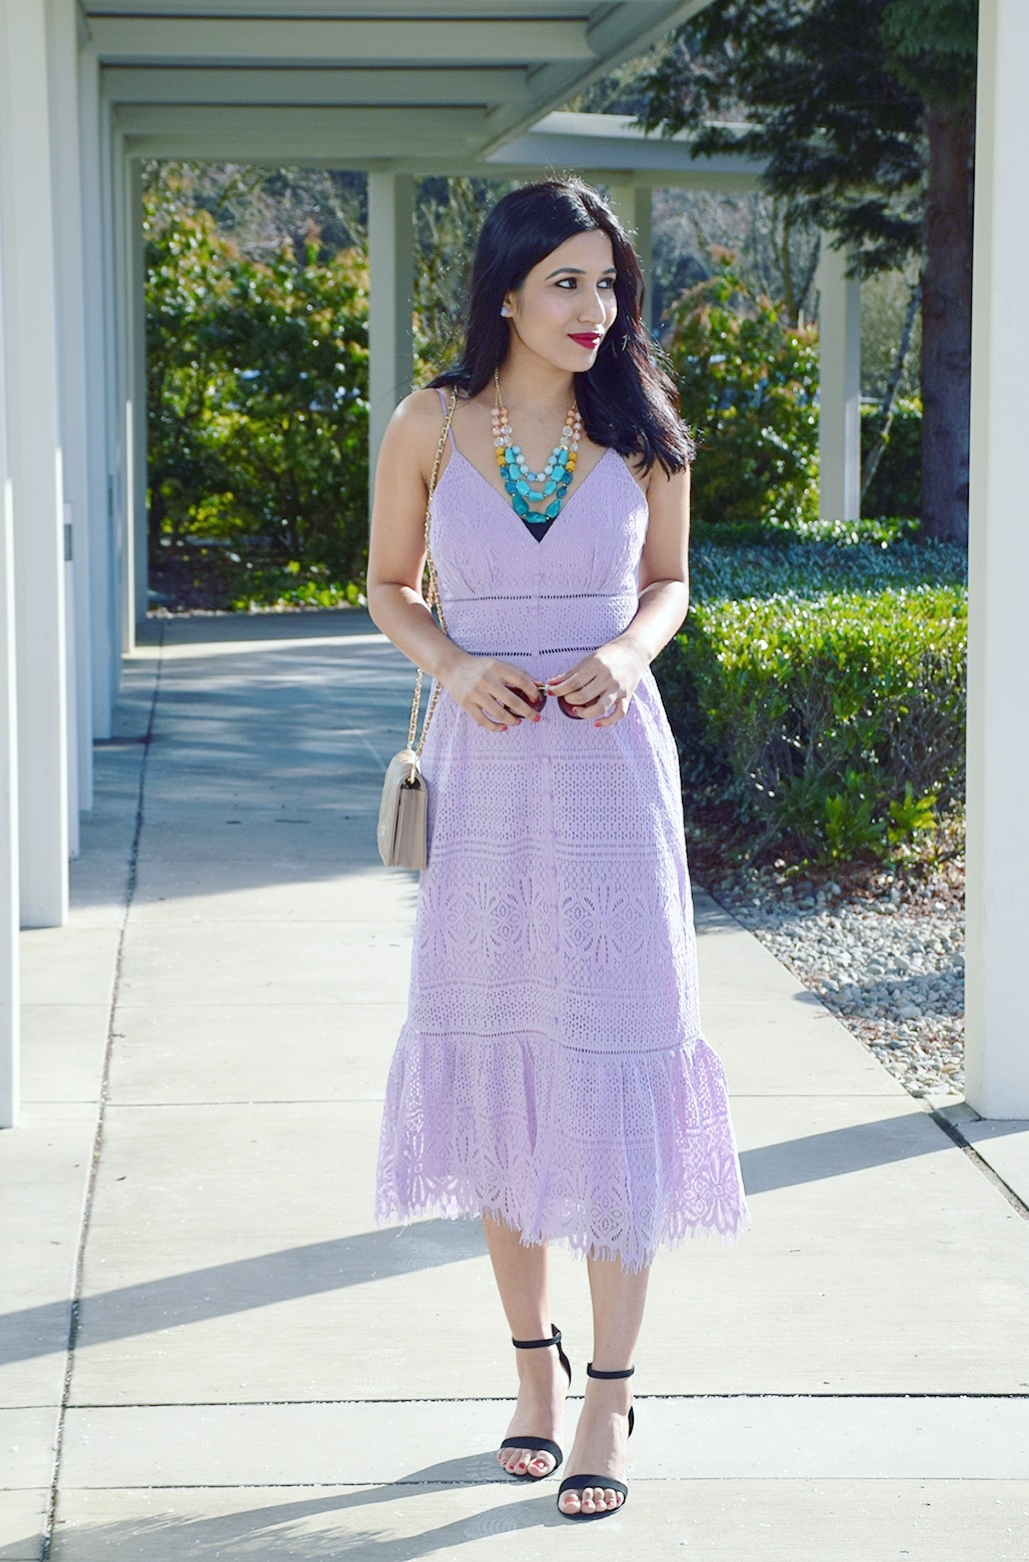 A Busy Mom Fashion Guide to look good and presentable: ft  Shoppinkblush